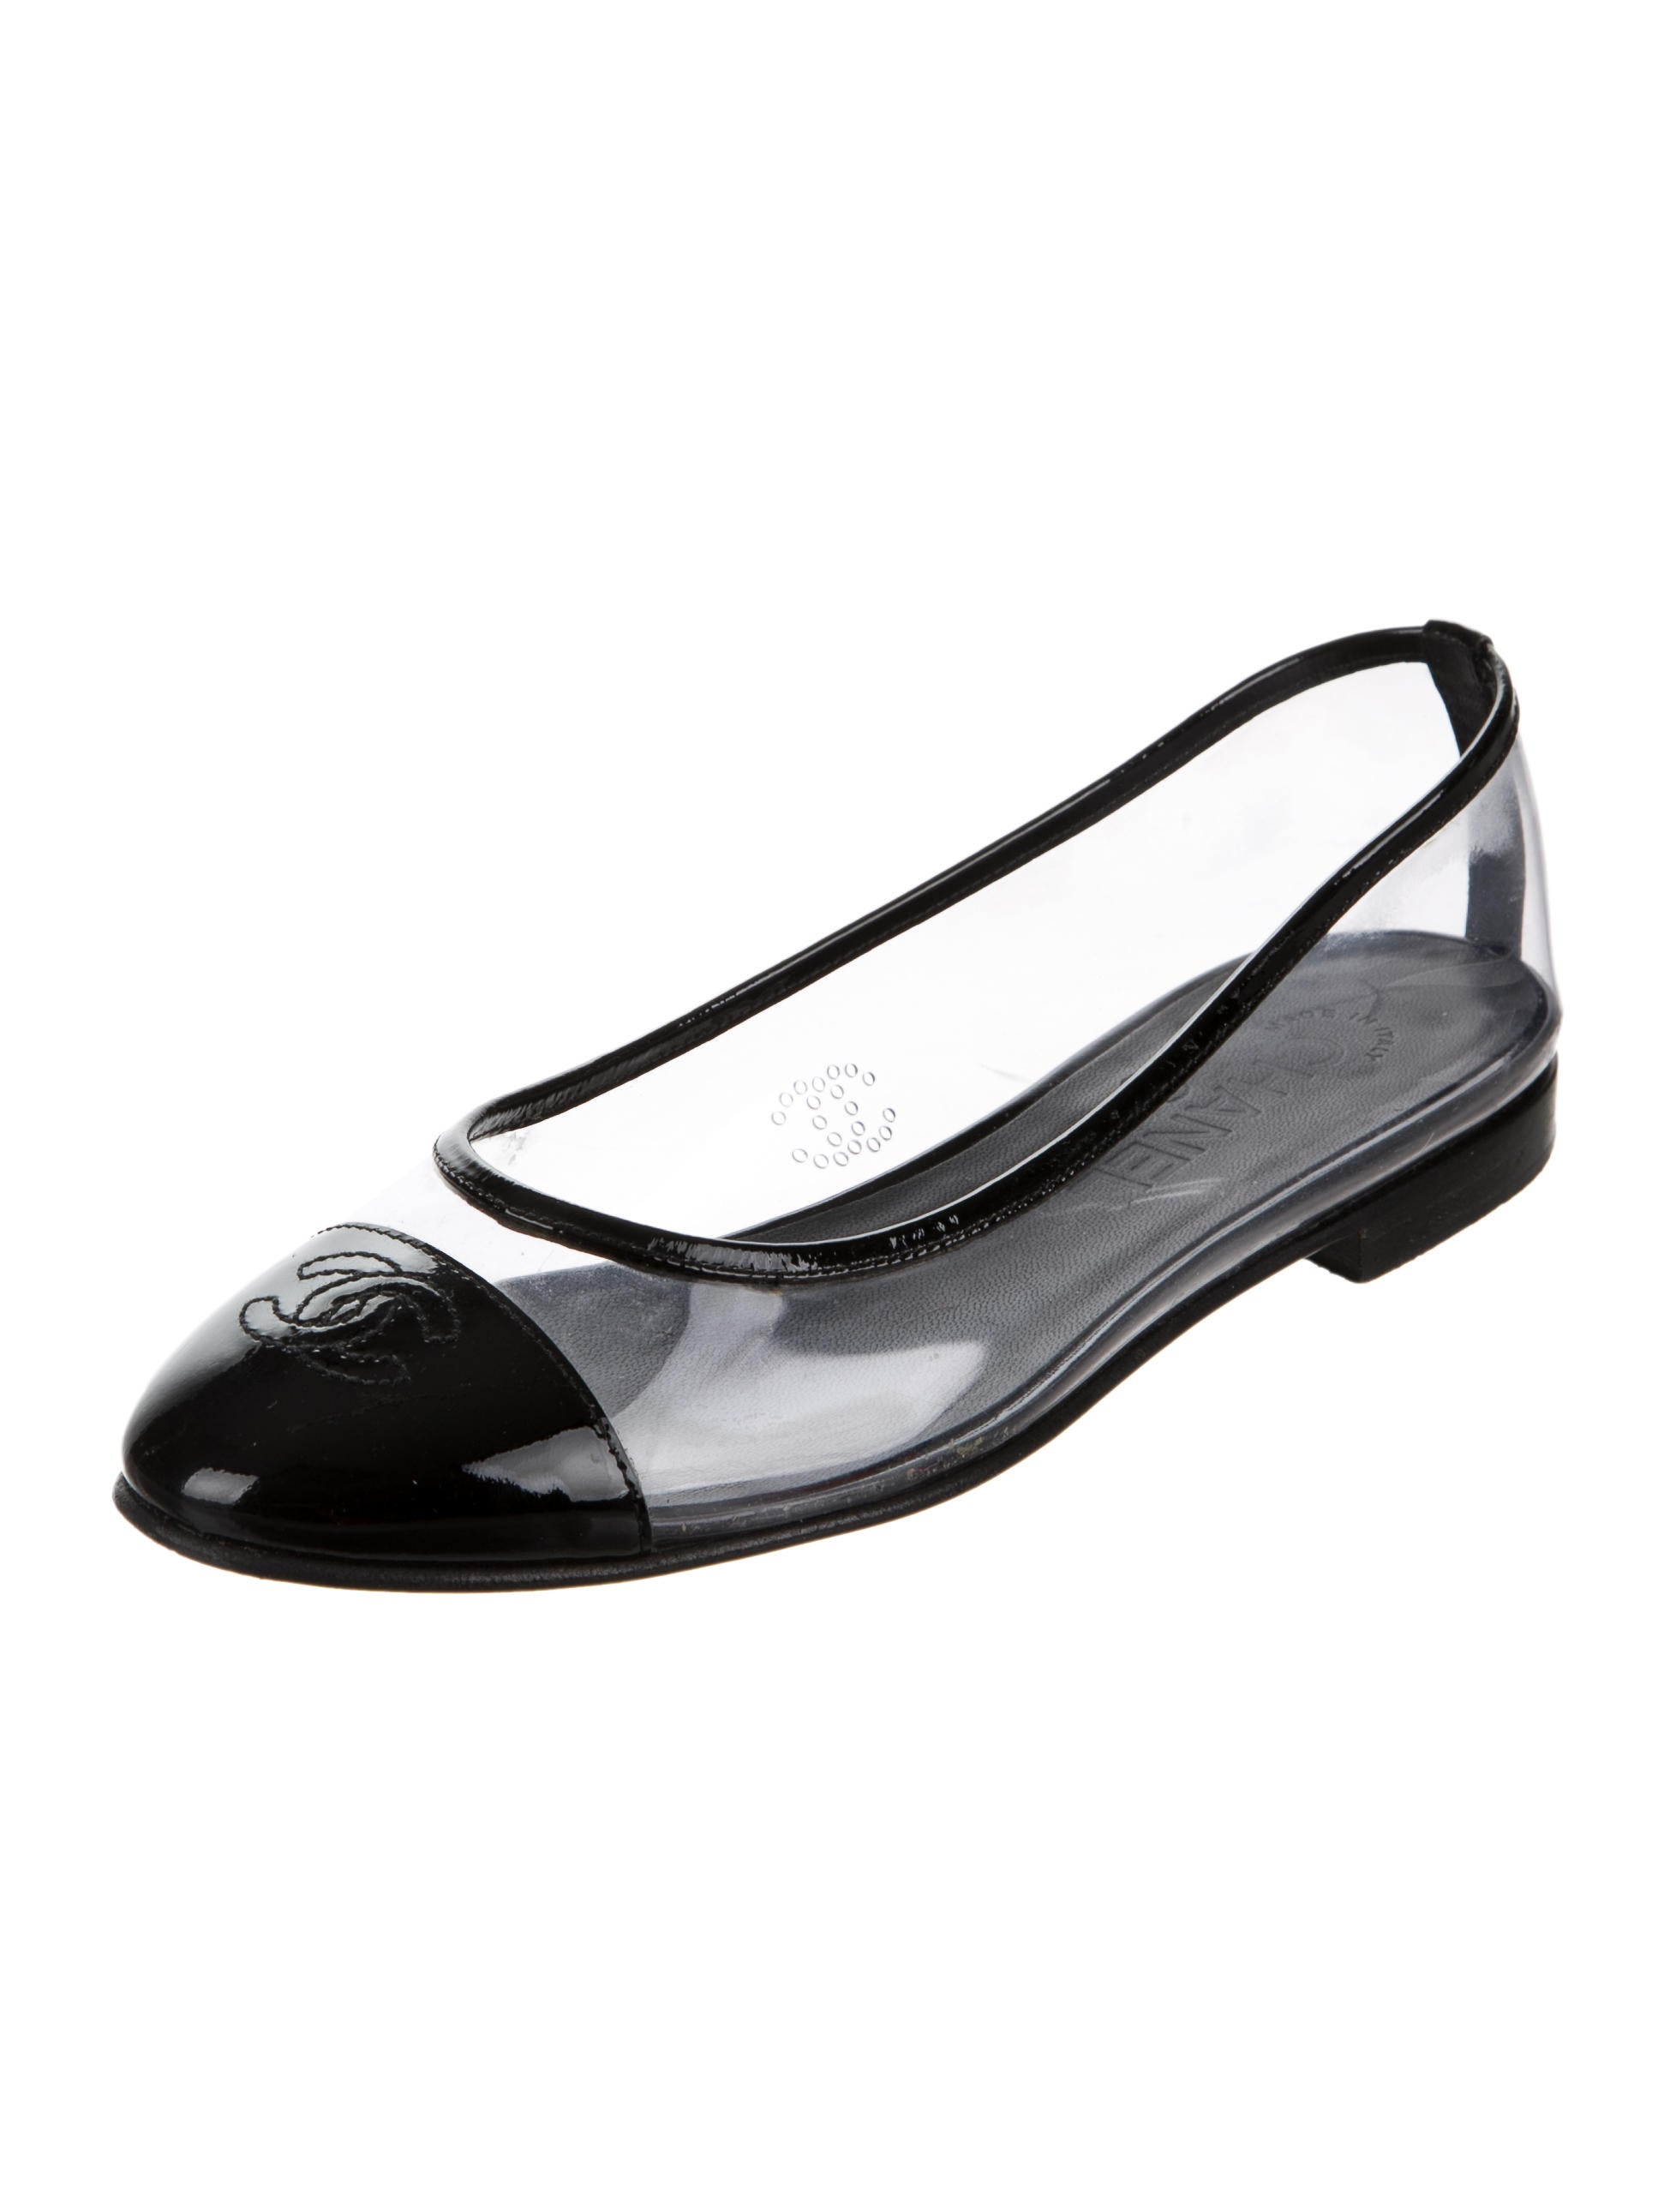 Chanel Pvc Cc Cap Toe Flats Shoes Cha158116 The Realreal